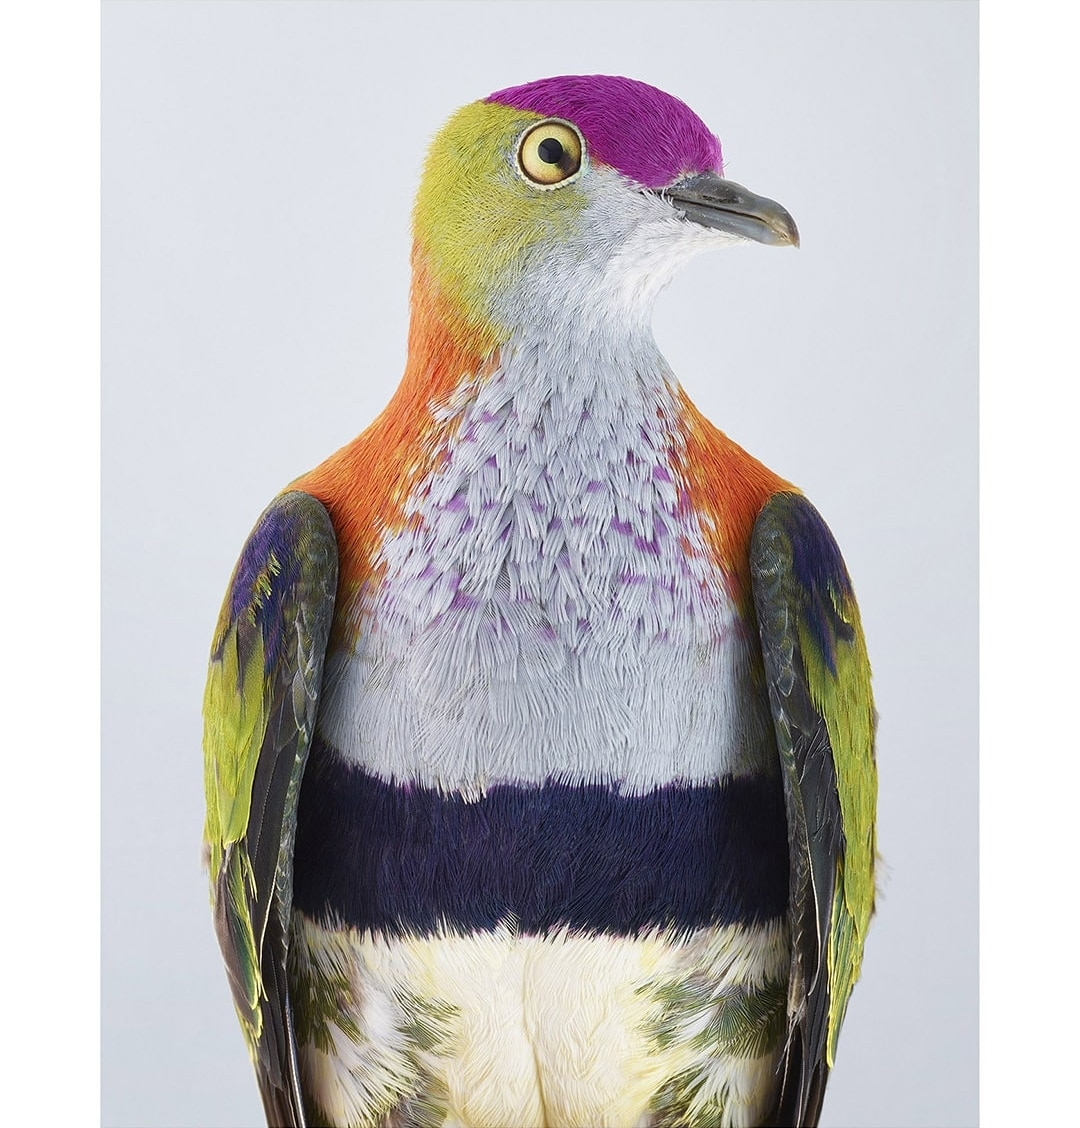 Superb Fruit Dove by Leila Jeffreys